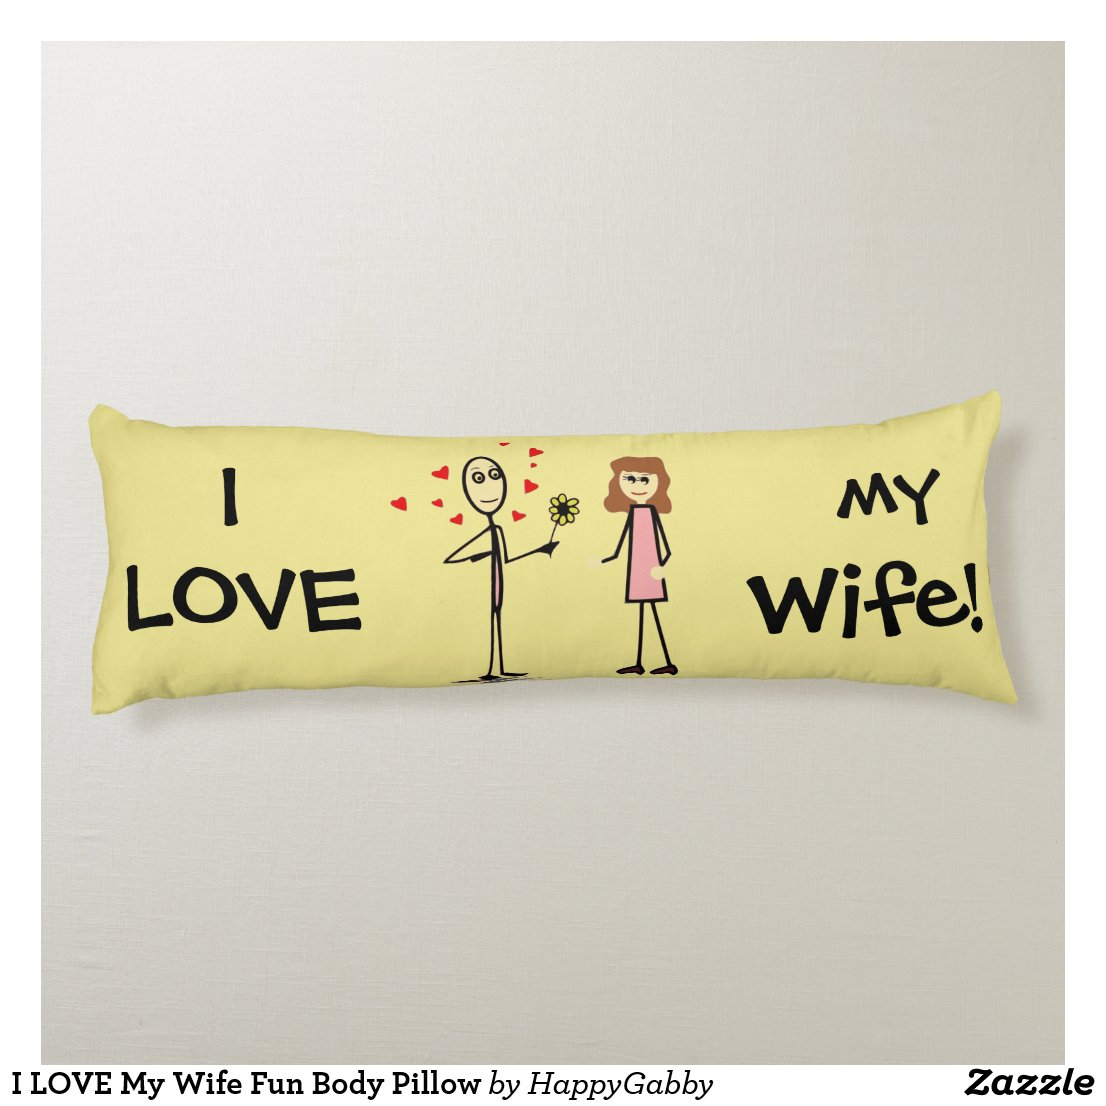 I LOVE My Wife Fun Body Pillow